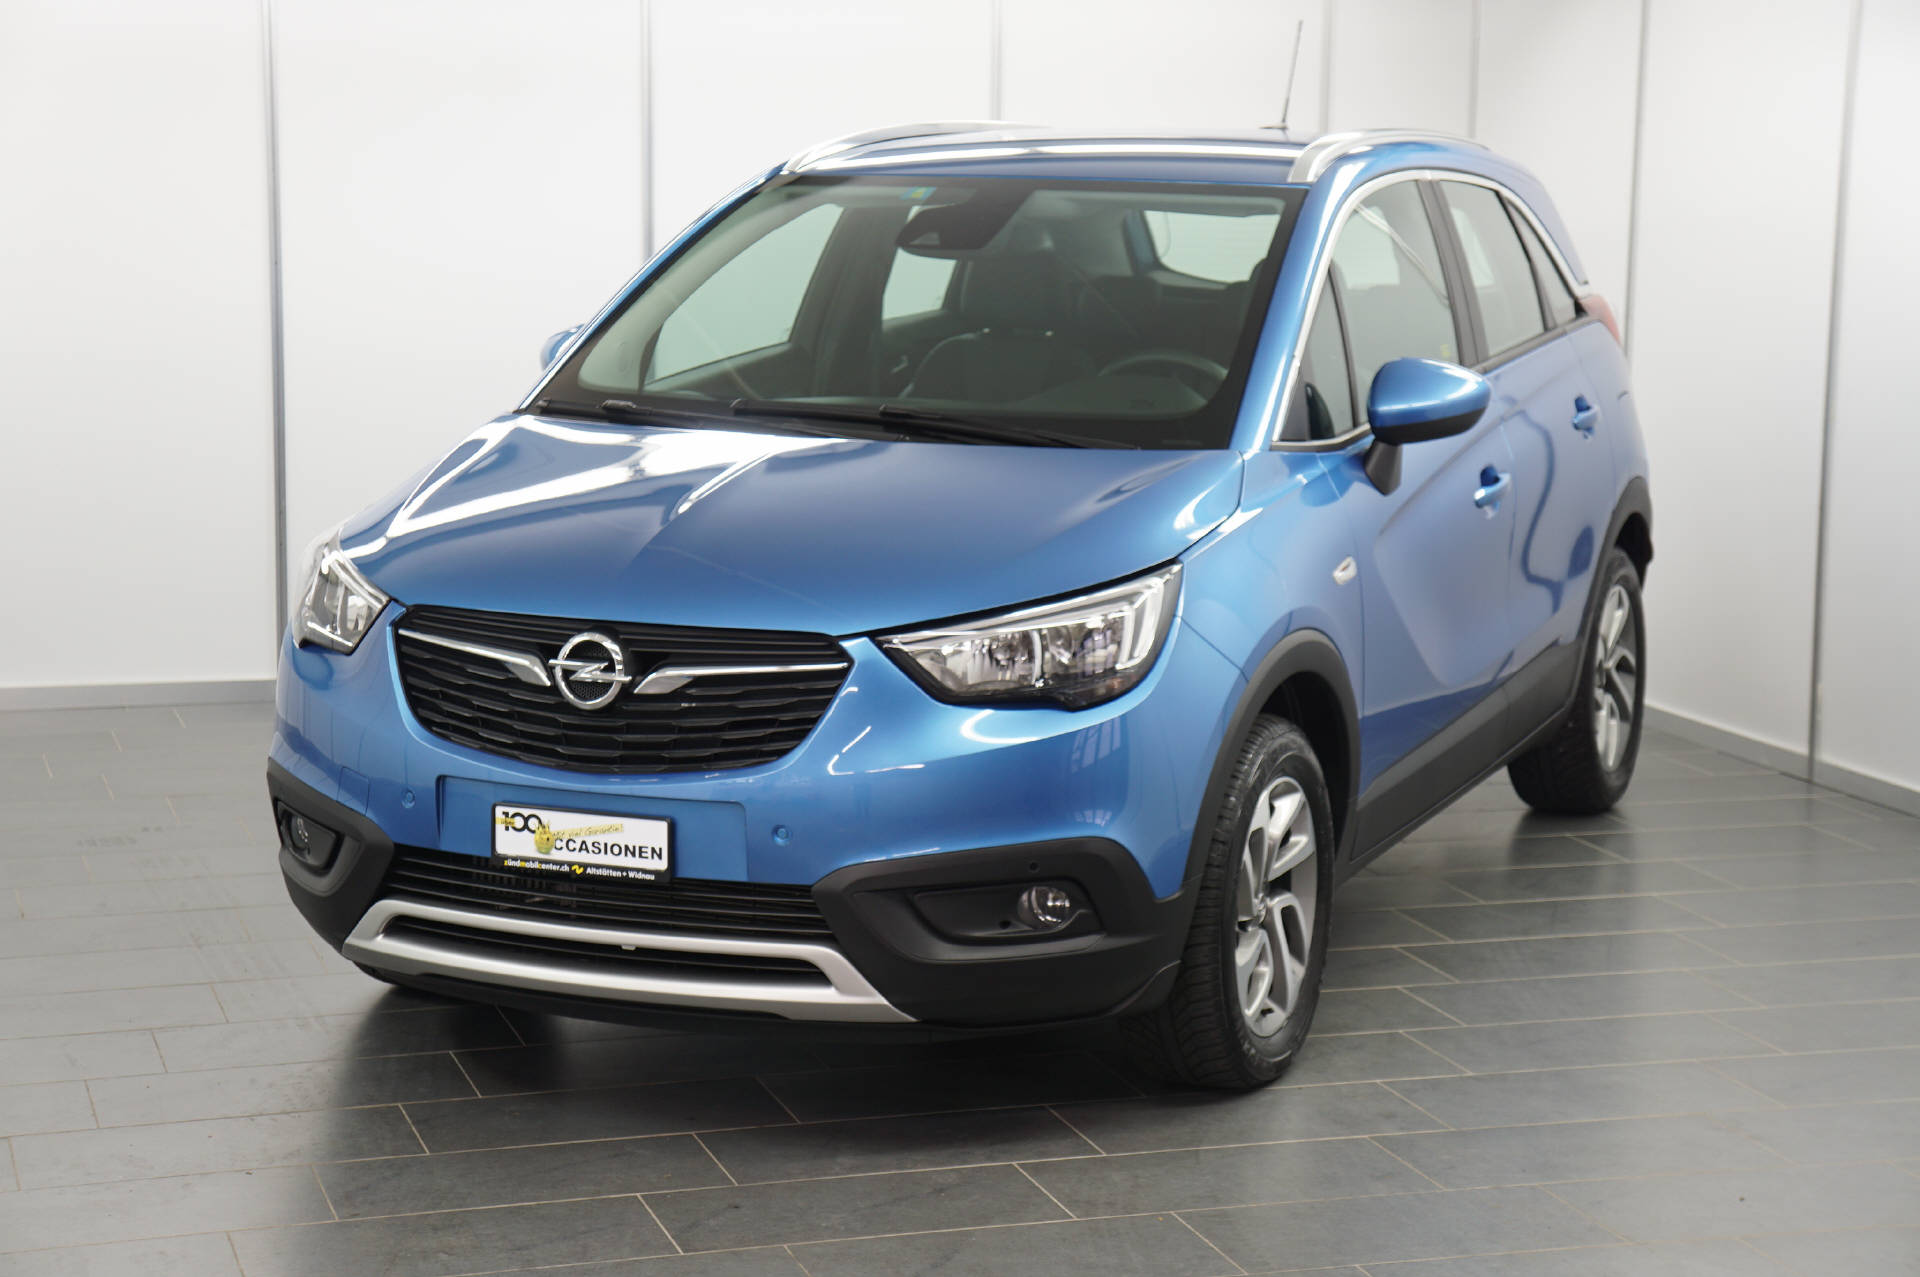 Kindersitz Test Suv Buy Suv Opel Crossland X 1 2 T Excellence S S On Carforyou Ch